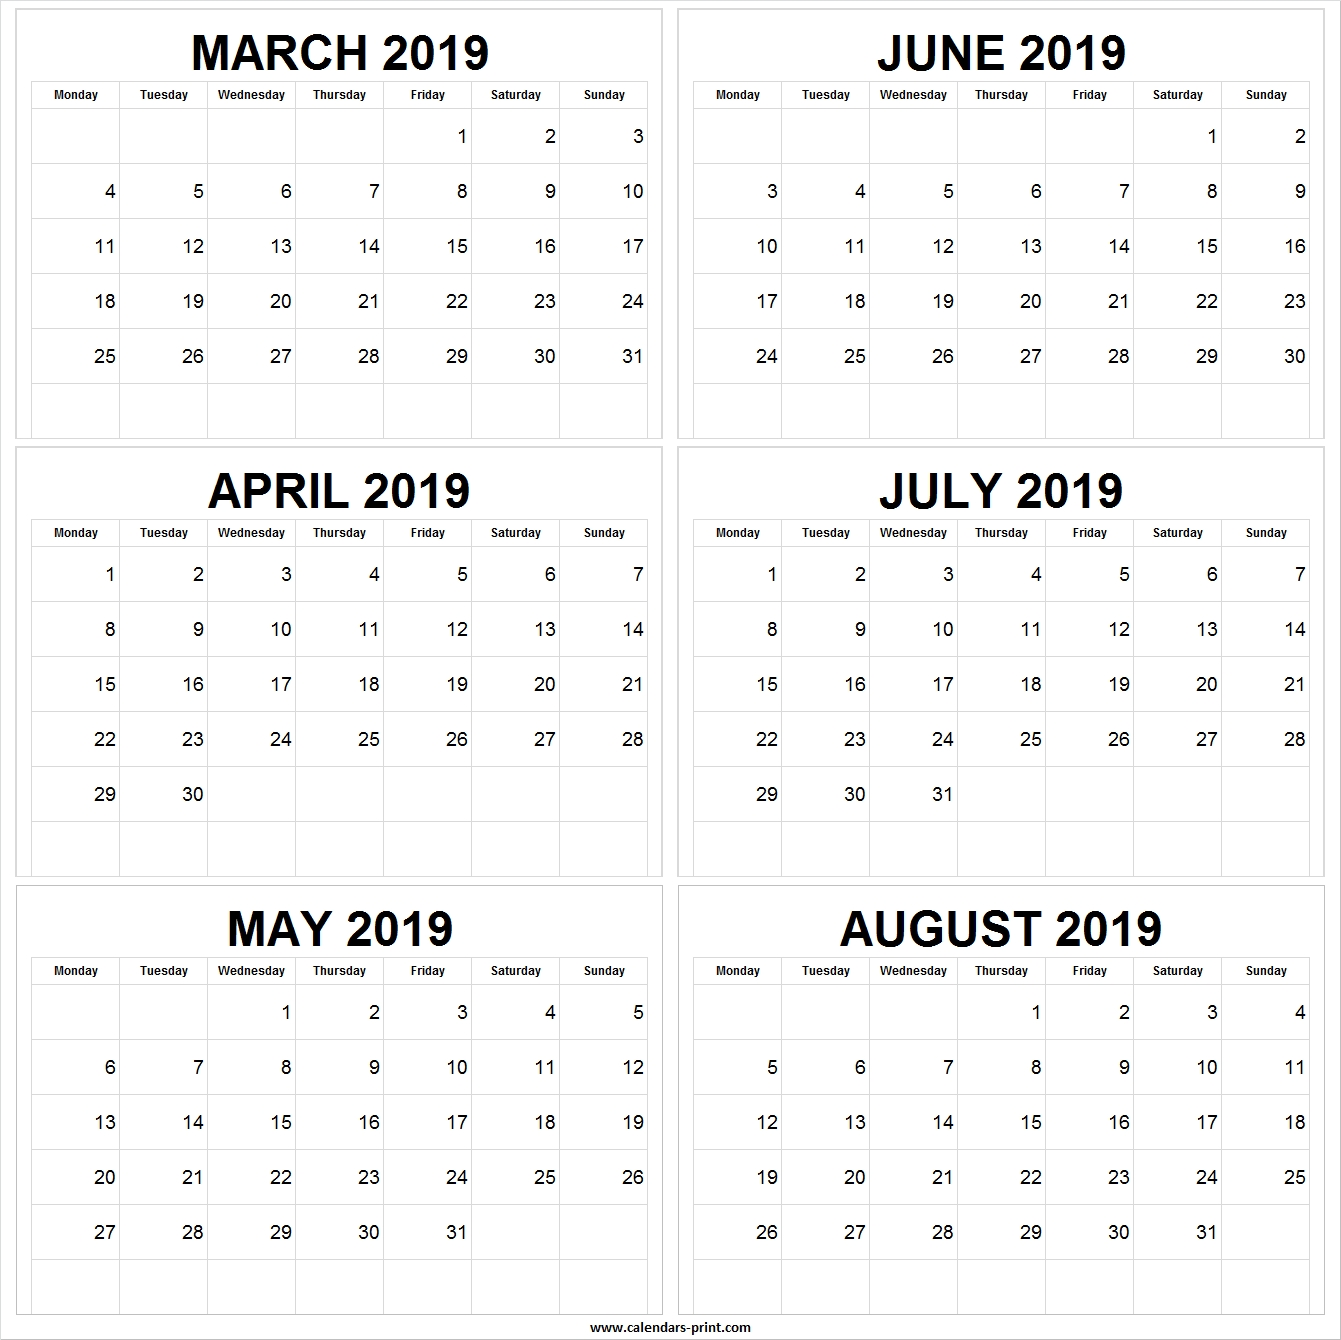 March April May June July August 2019 Calendar   March 2019 Calendar within May June July August Calendar